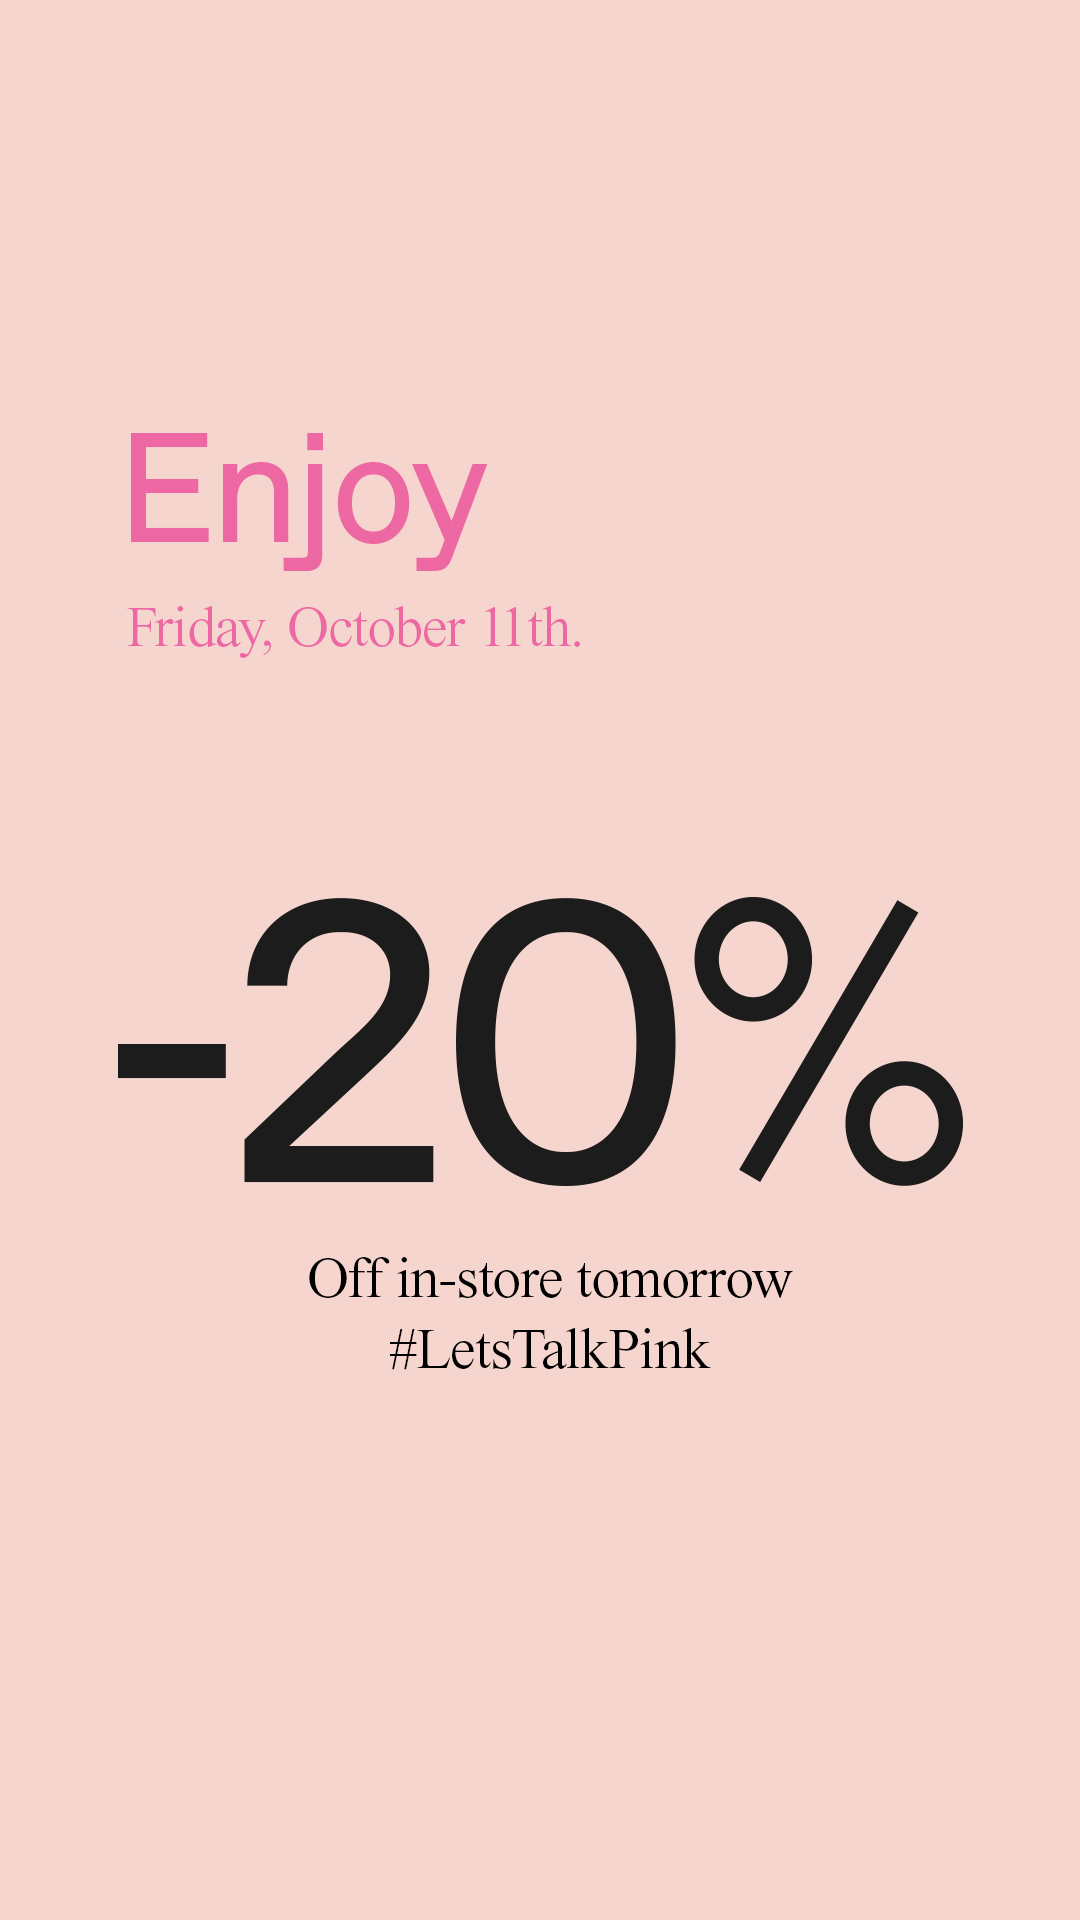 Enjoy 20% off everything* in Vero Moda, Friday October 11th to celebrate PINK DAY.